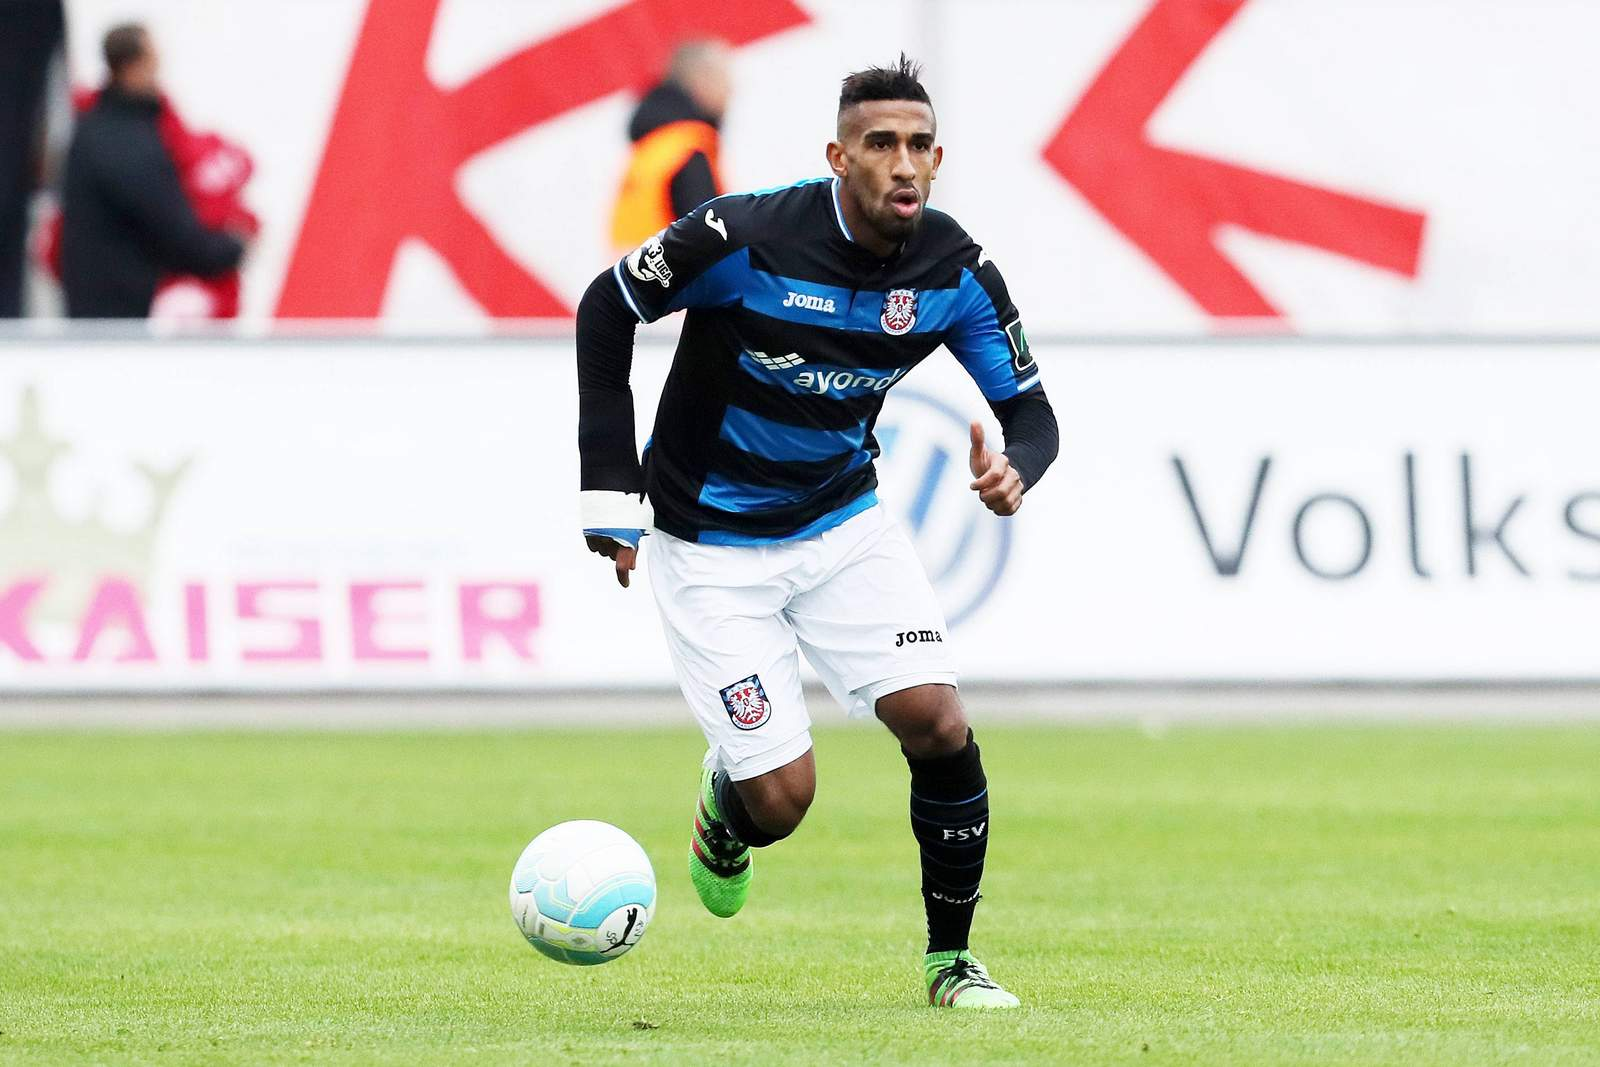 Shawn Barry vom FSV Frankfurt